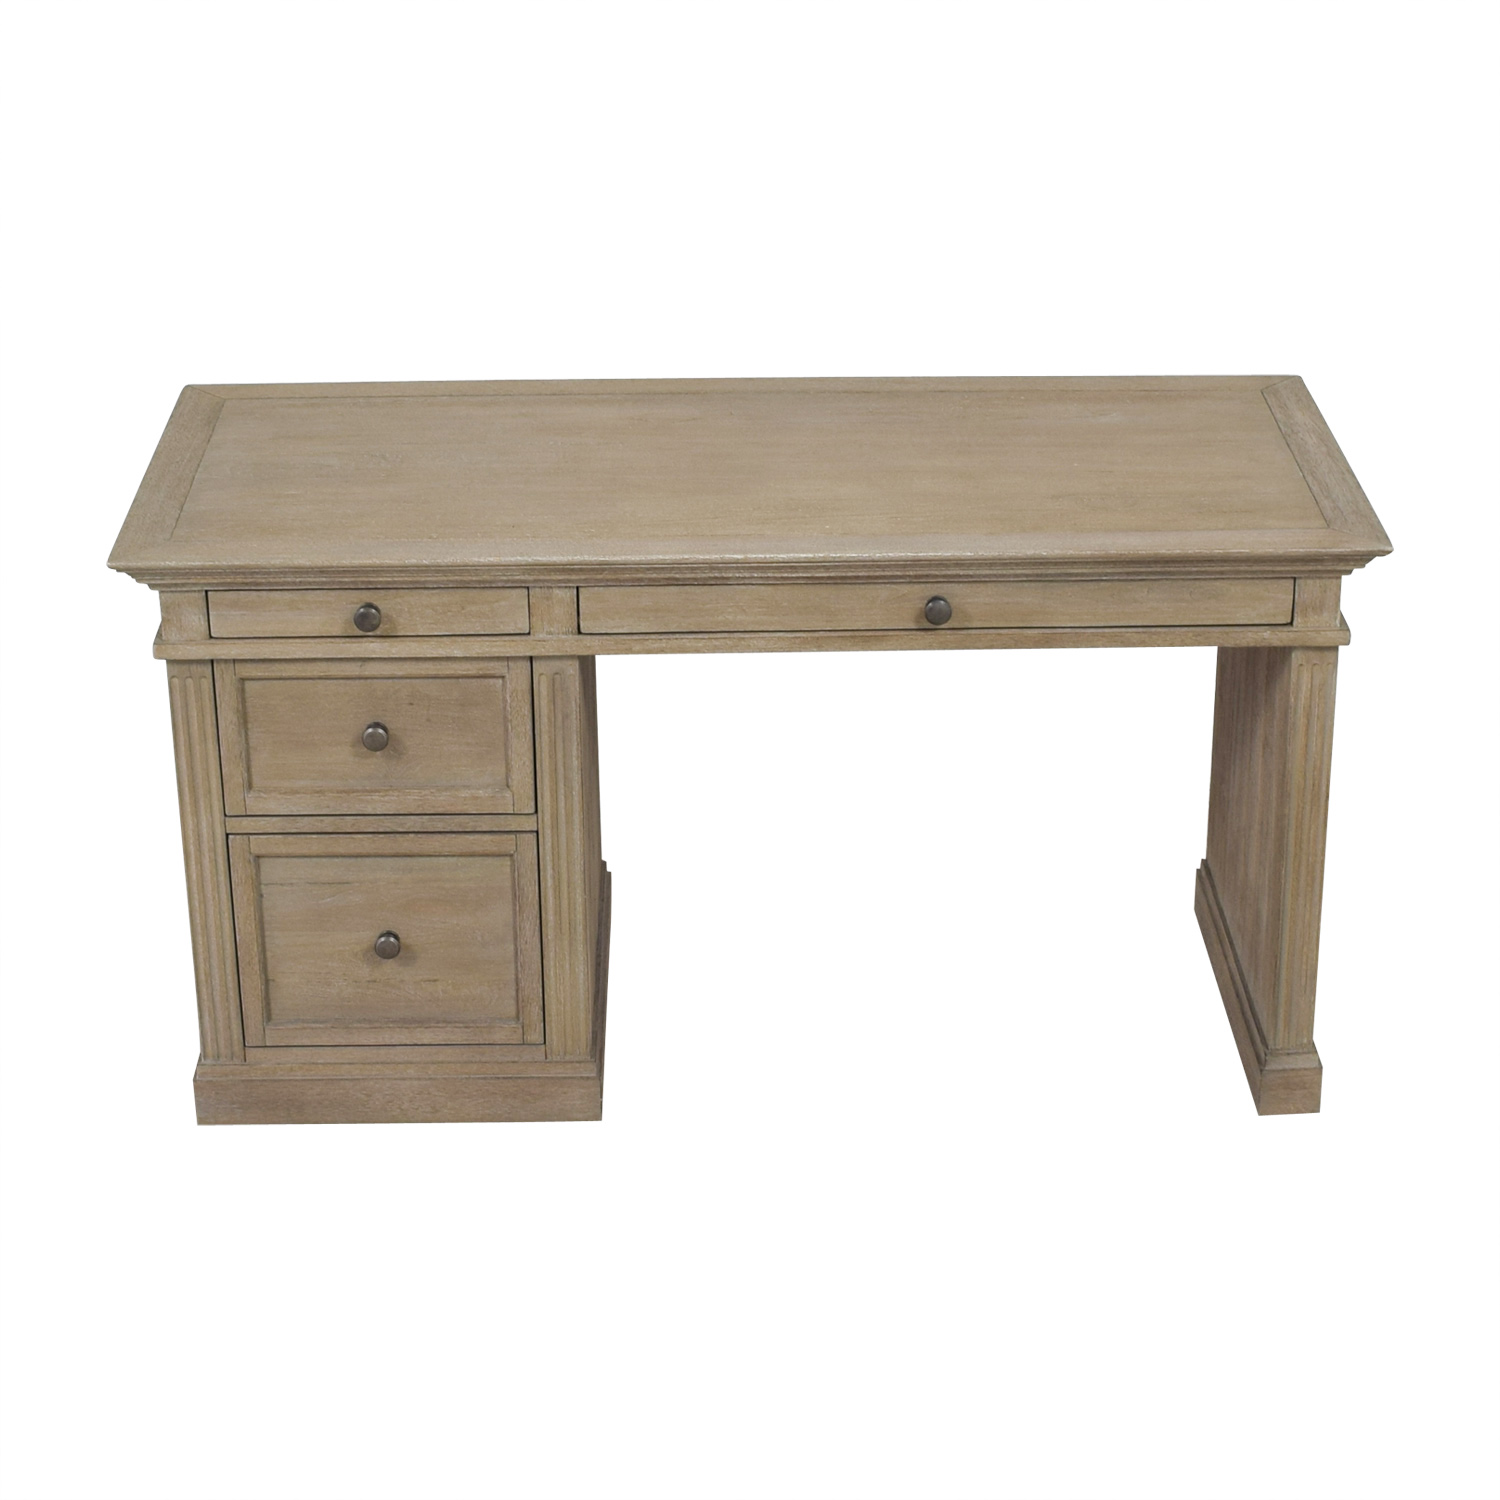 Pottery Barn Livingston Gray Wash Four-Drawer Desk Pottery Barn